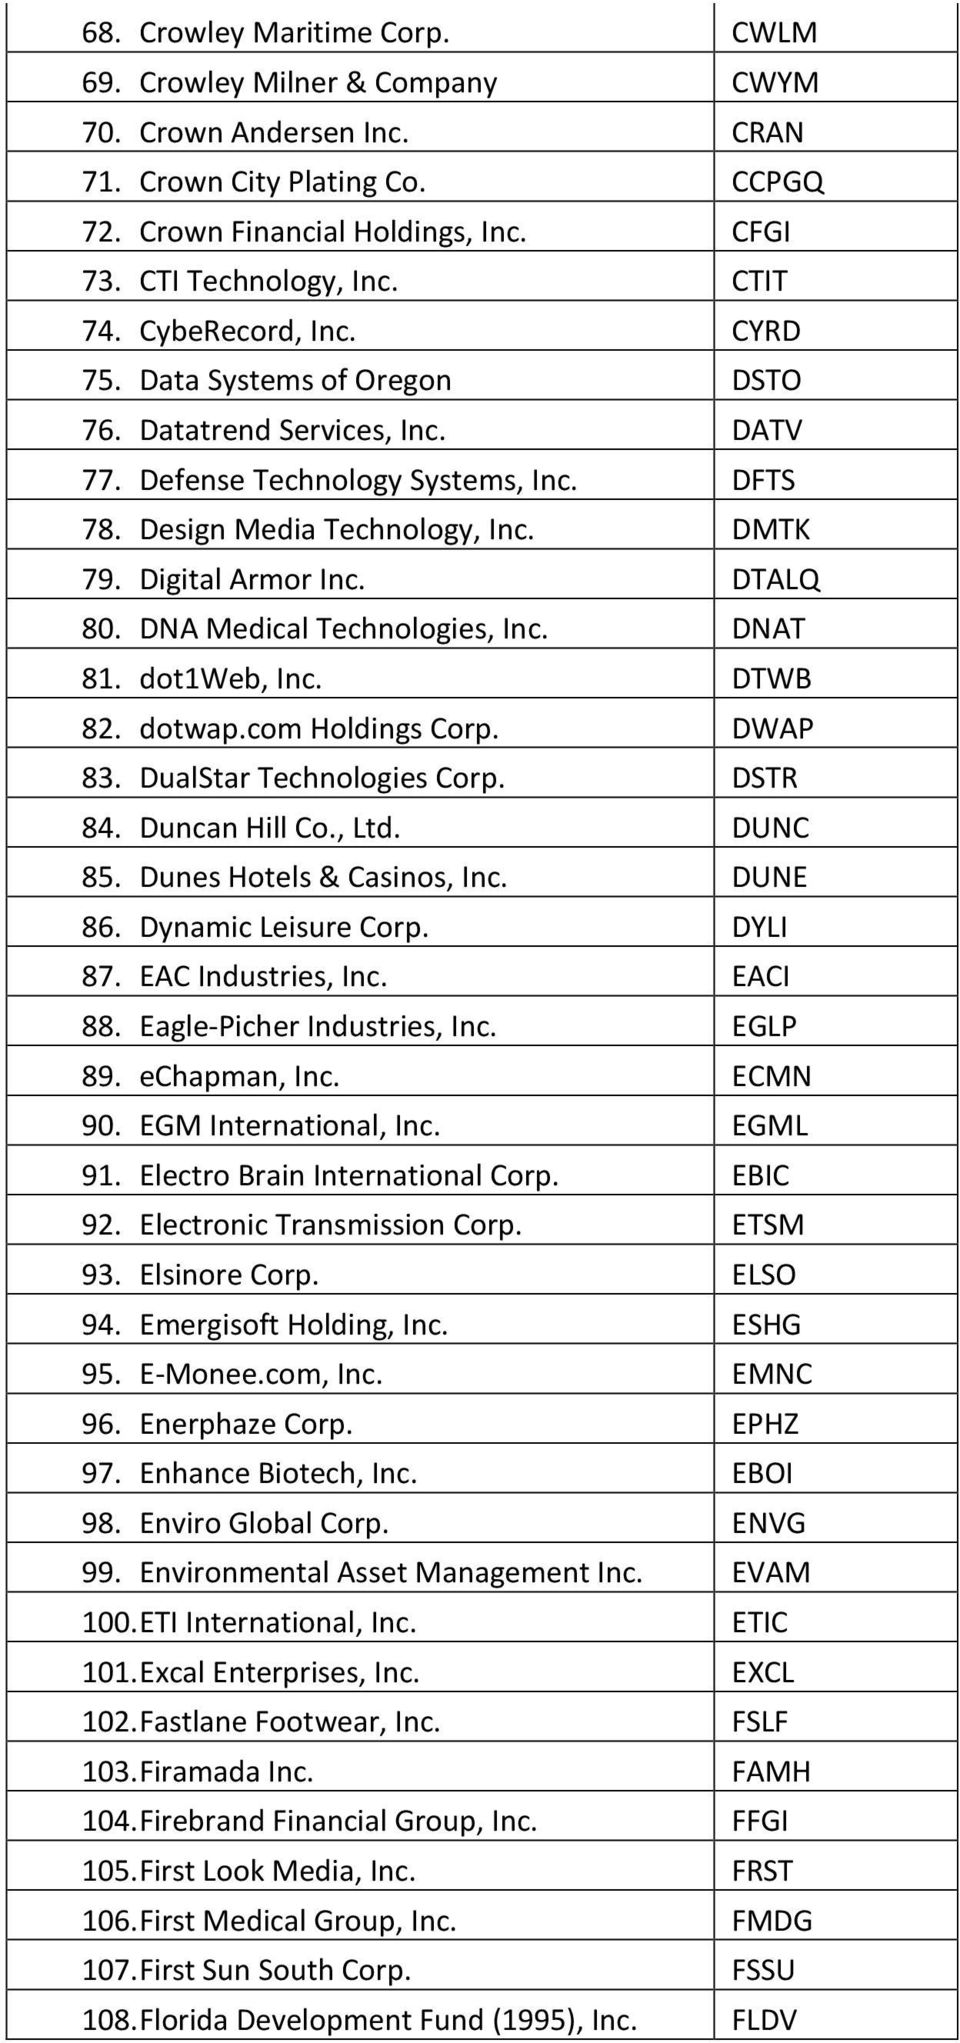 DTALQ 80. DNA Medical Technologies, Inc. DNAT 81. dot1web, Inc. DTWB 82. dotwap.com Holdings Corp. DWAP 83. DualStar Technologies Corp. DSTR 84. Duncan Hill Co., Ltd. DUNC 85.